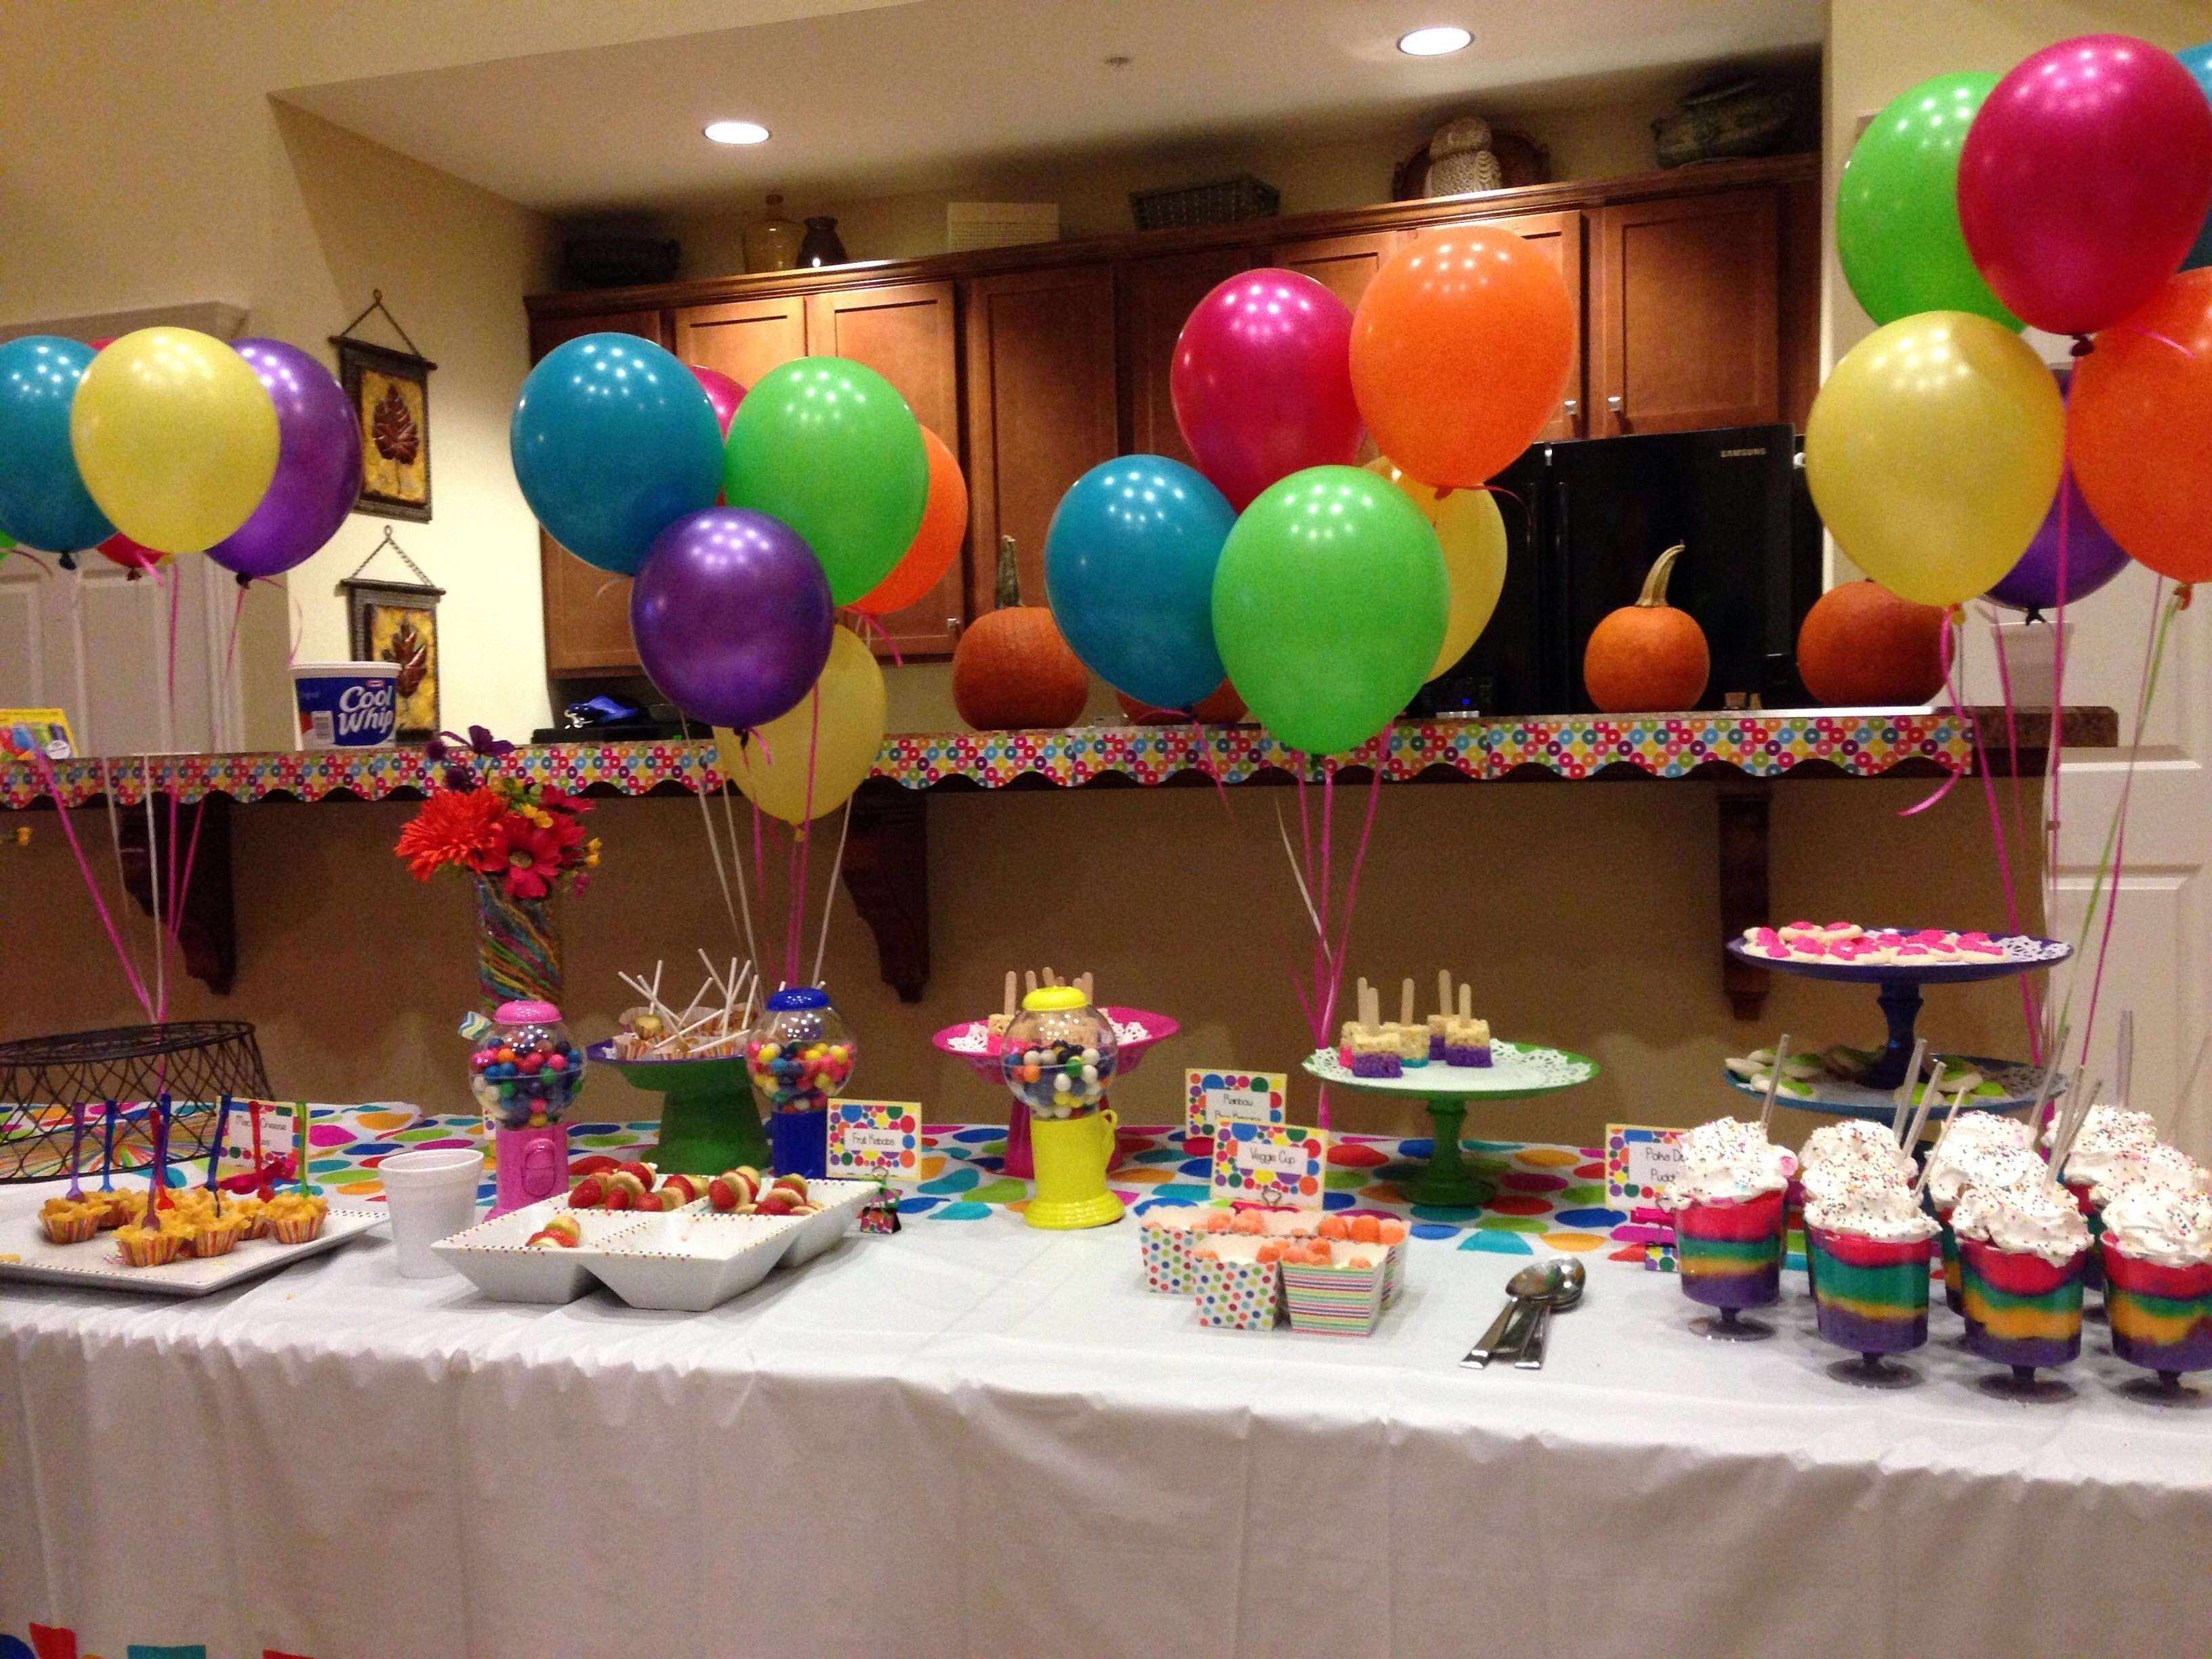 10 Best Birthday Party Ideas For 2 Year Old 4 year old birthday party modern portrait around gallery 2 year old 4